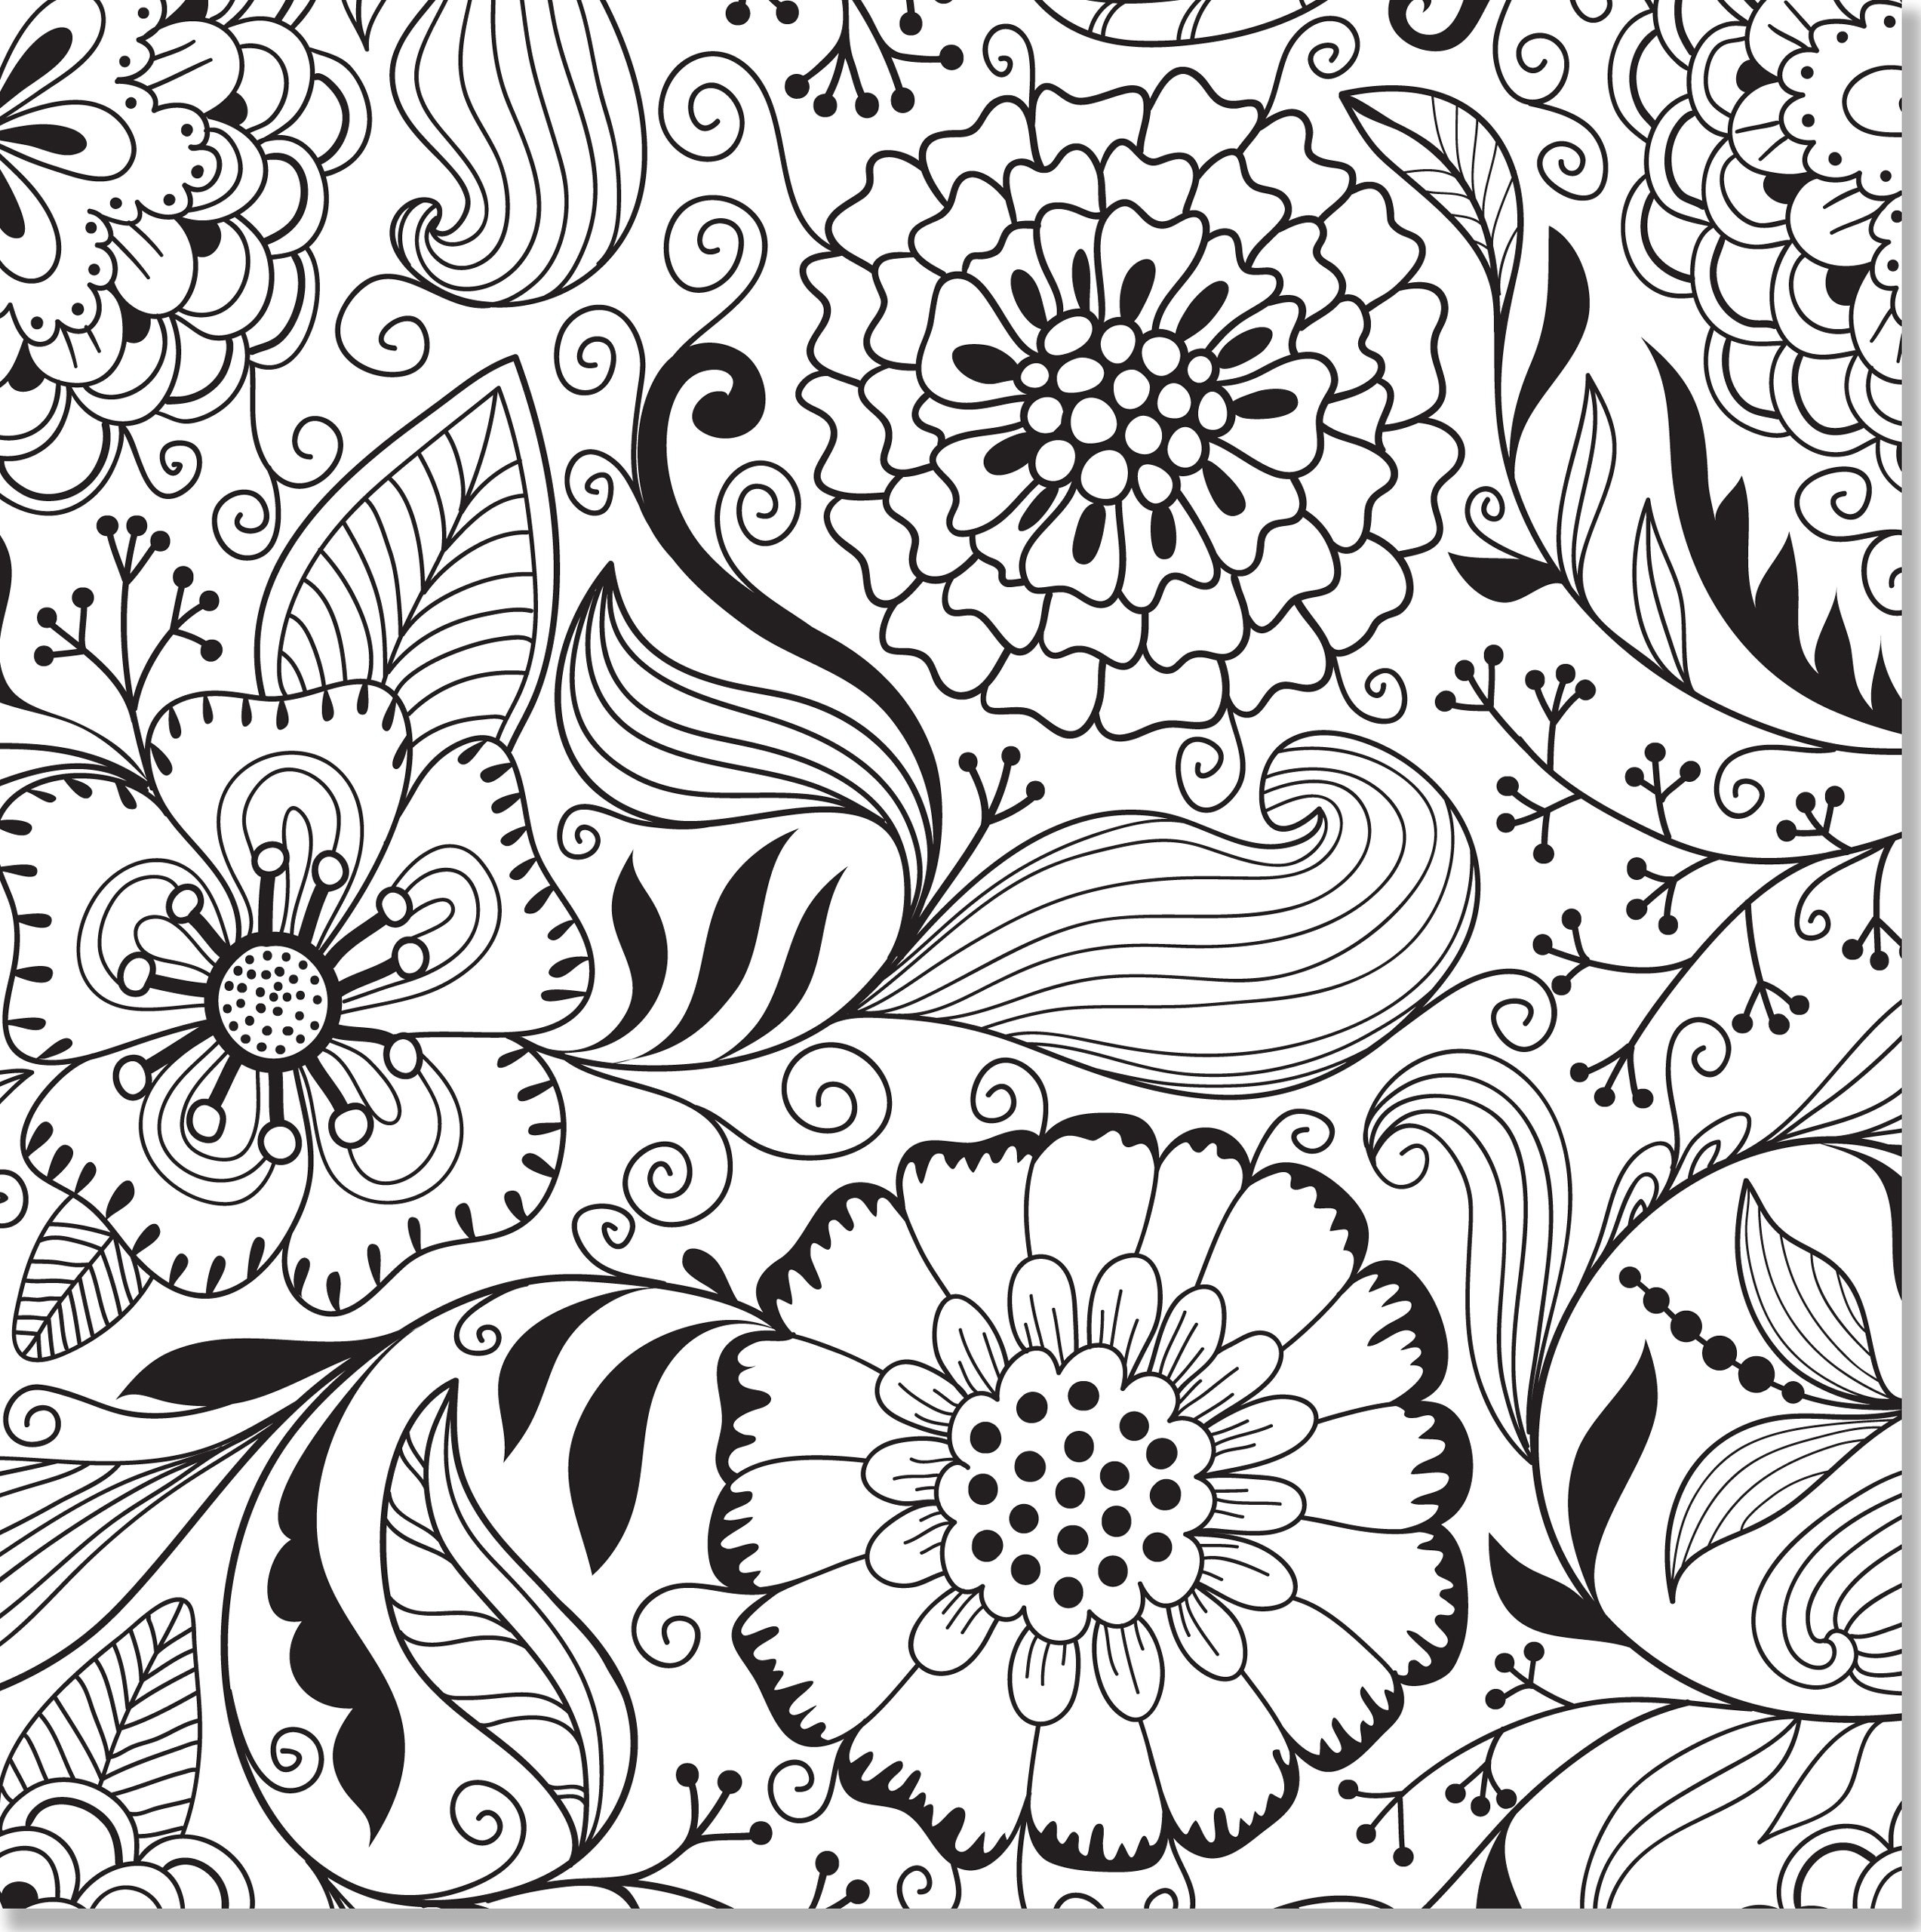 Awesome Free Printable Coloring Book Pages For Adults   Coloring Pages - Free Printable Coloring Pages For Adults Advanced